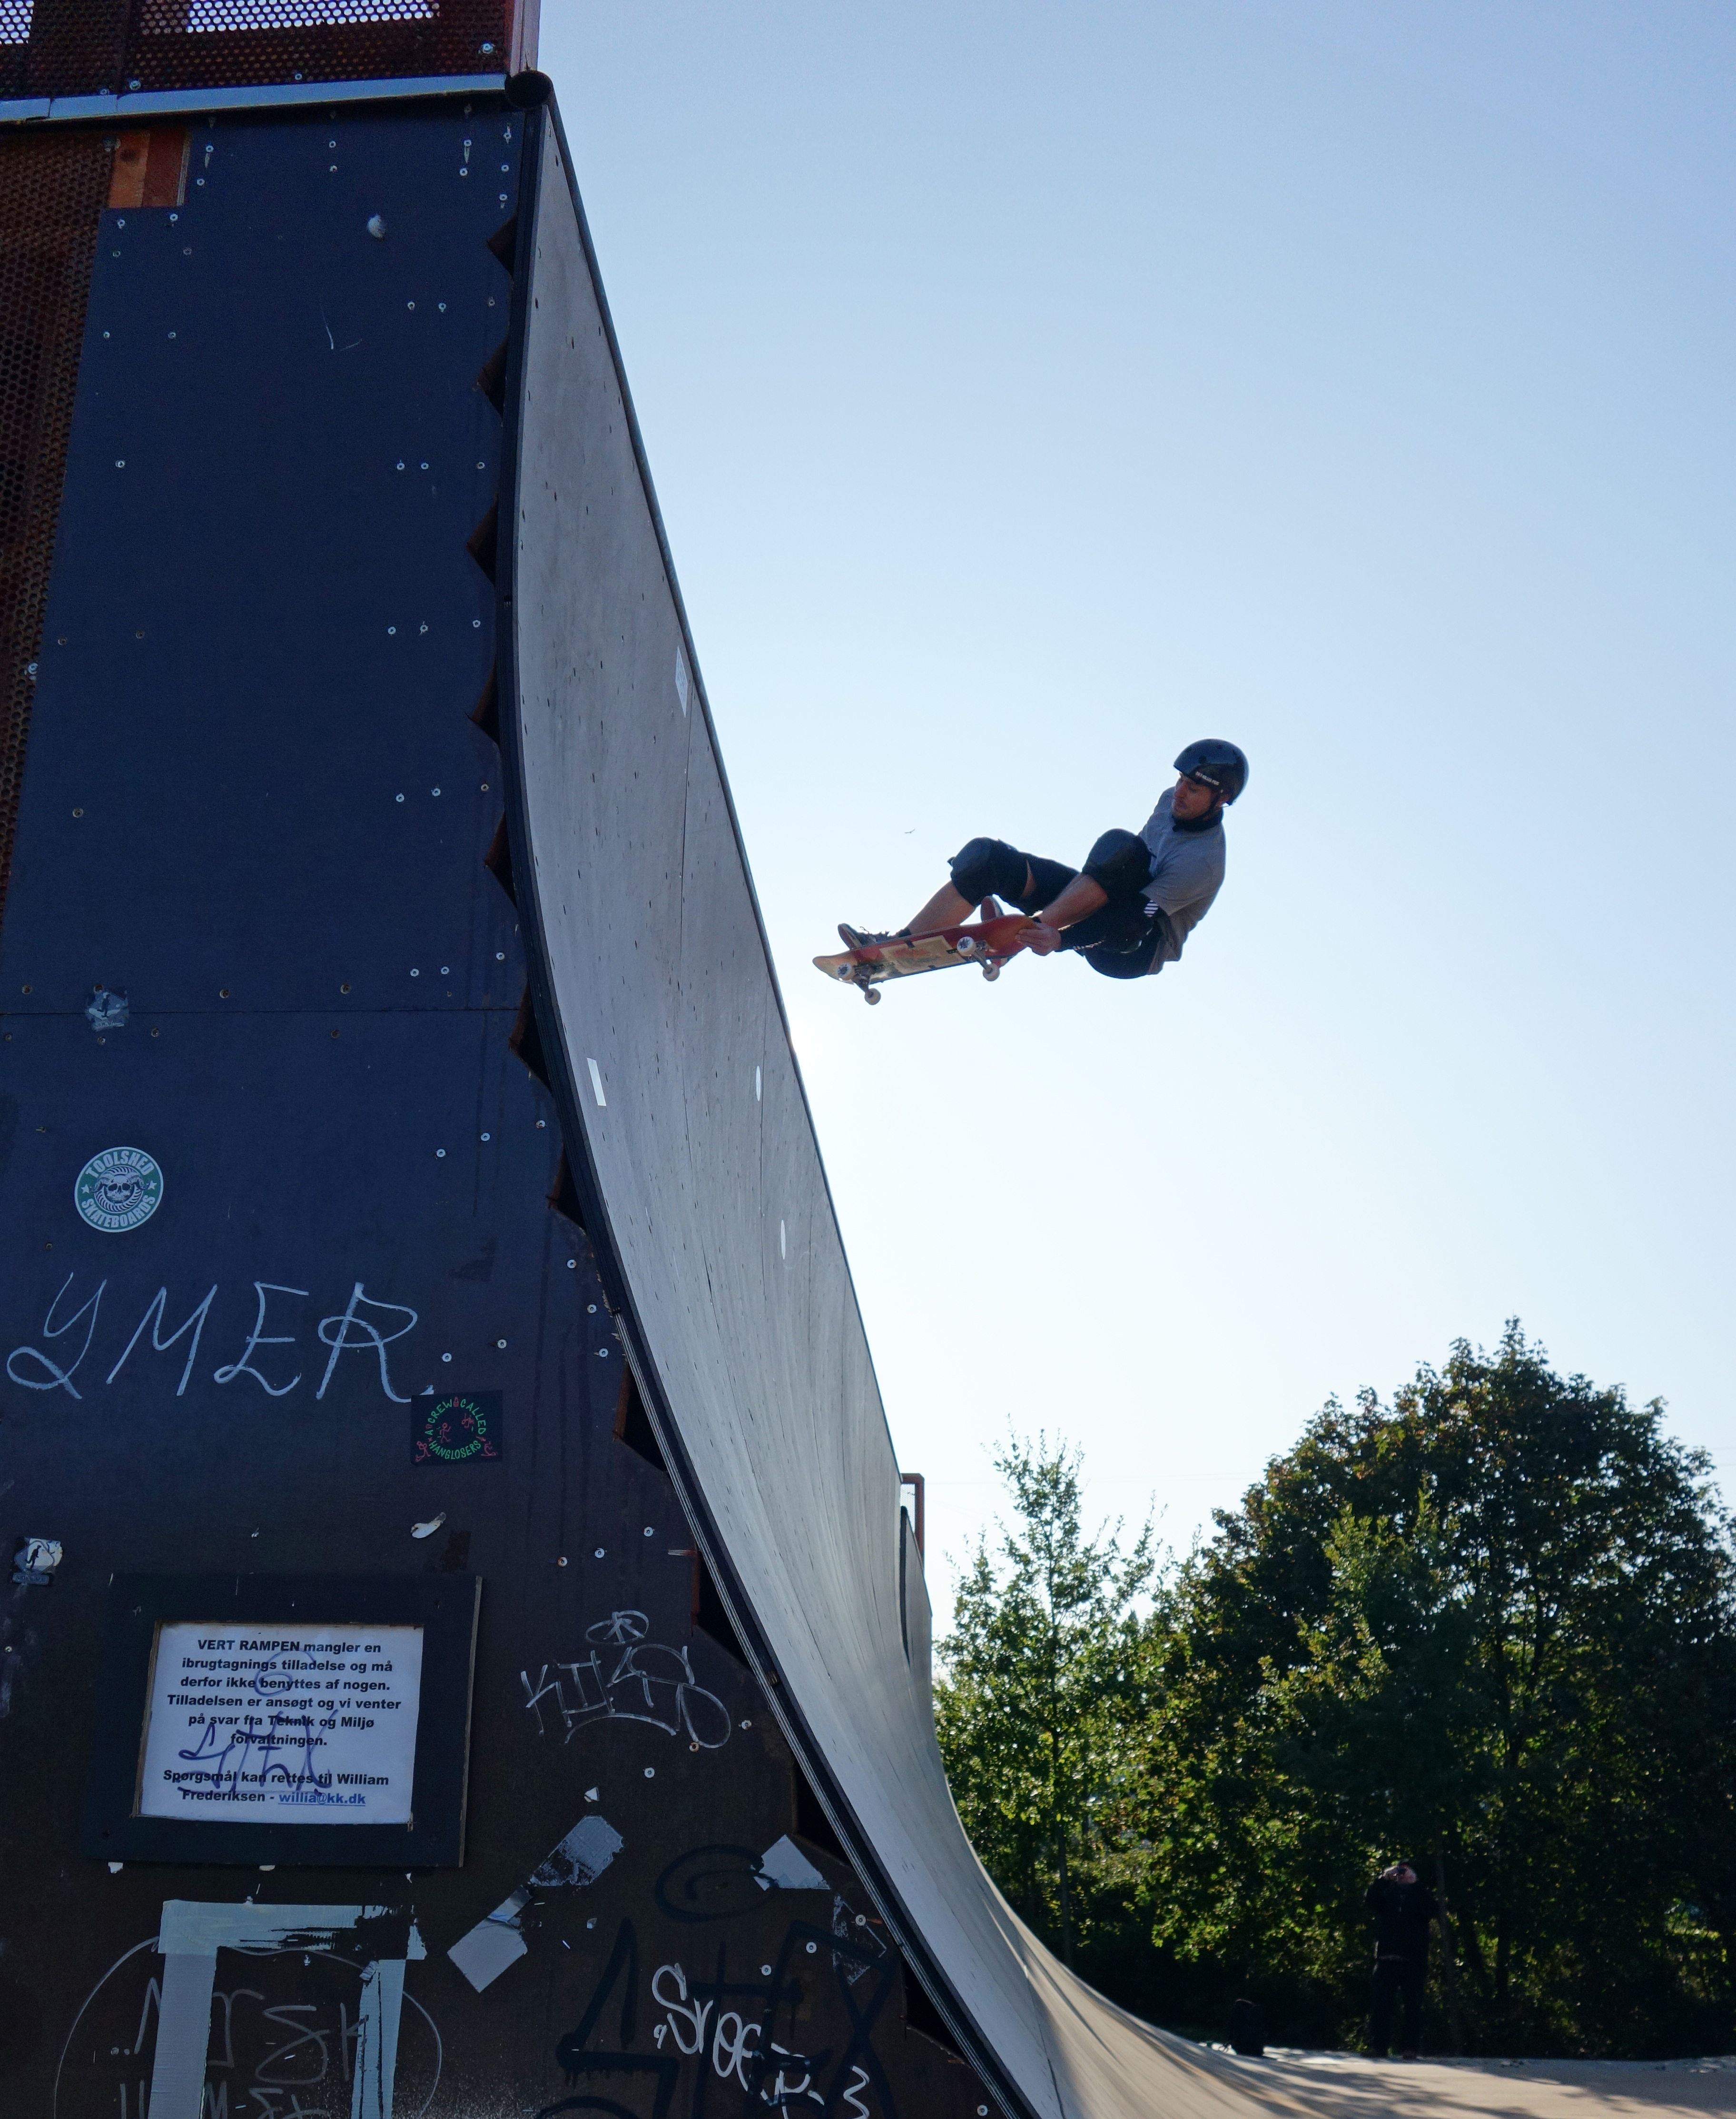 We love the poster on the side of the ramp, Bo larsen coming down from a lien air